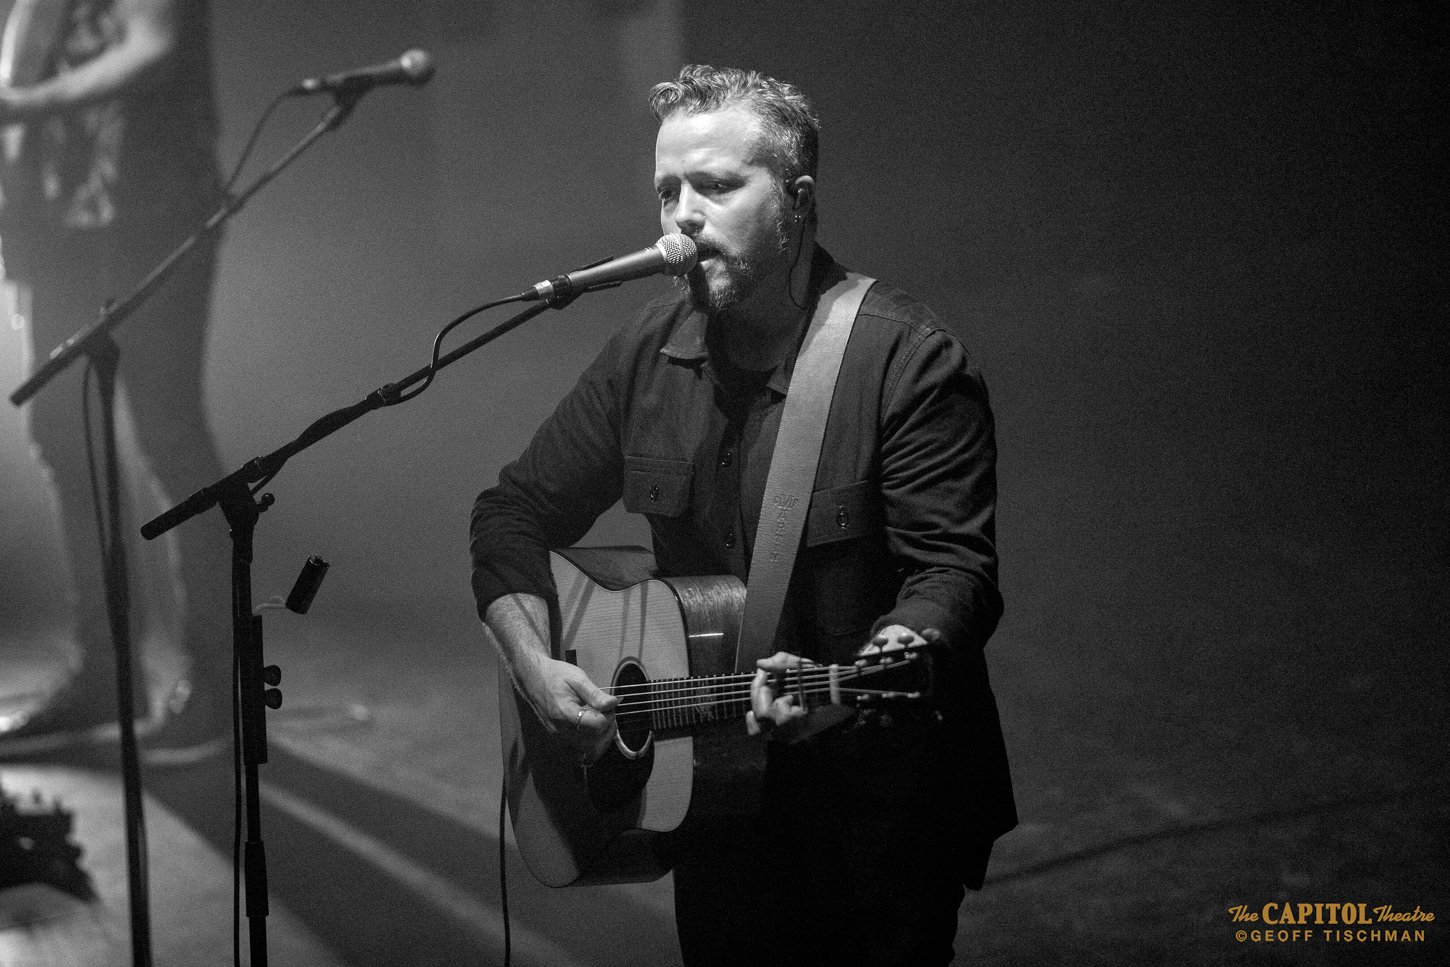 The Ferocious Heart Roars: Jason Isbell And The 400 Unit Live In New York